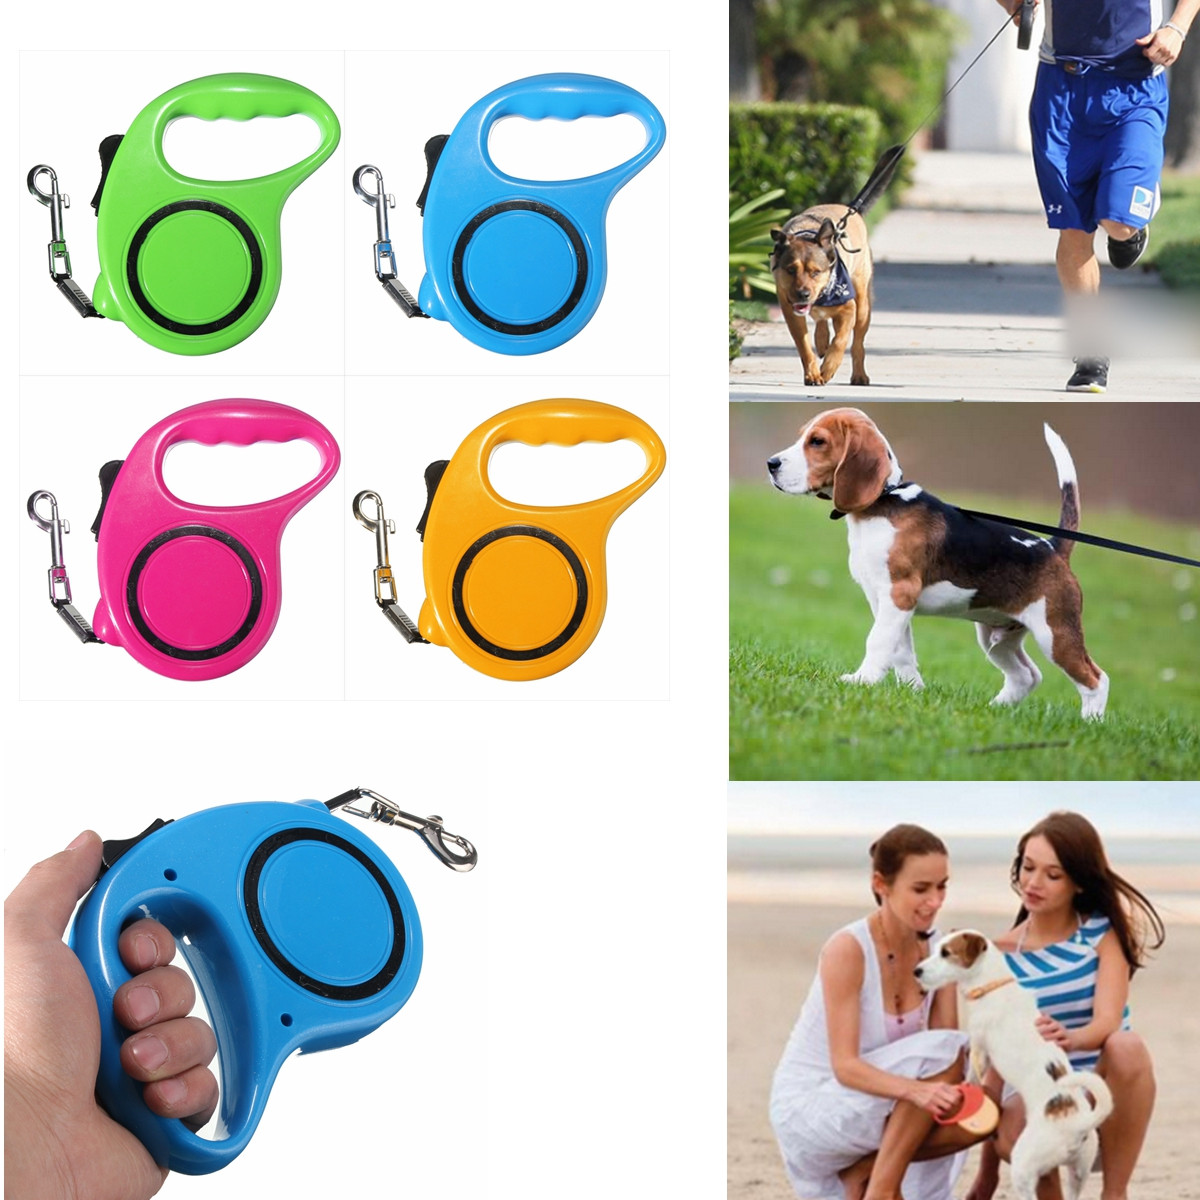 4 Colors 10FT/3M Retractable Leash Extendable Pet Dog Walking Training Leash Dogs Nylon Automatic Lead Gift For Friends